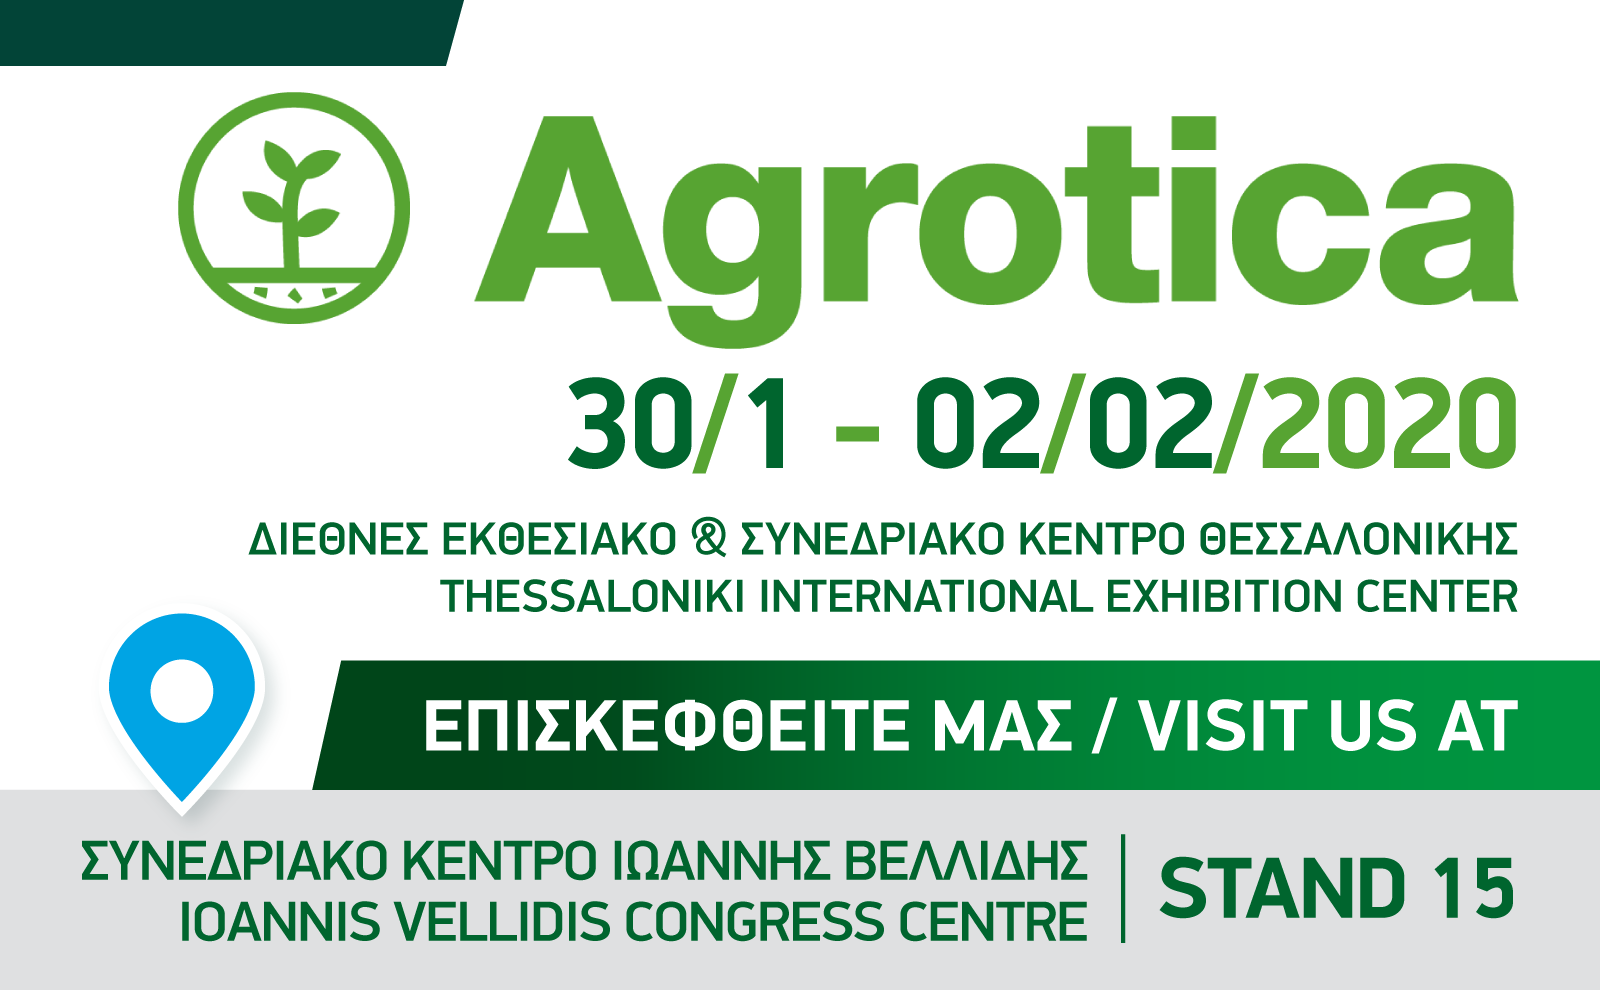 Agrotica-2020-website-banner